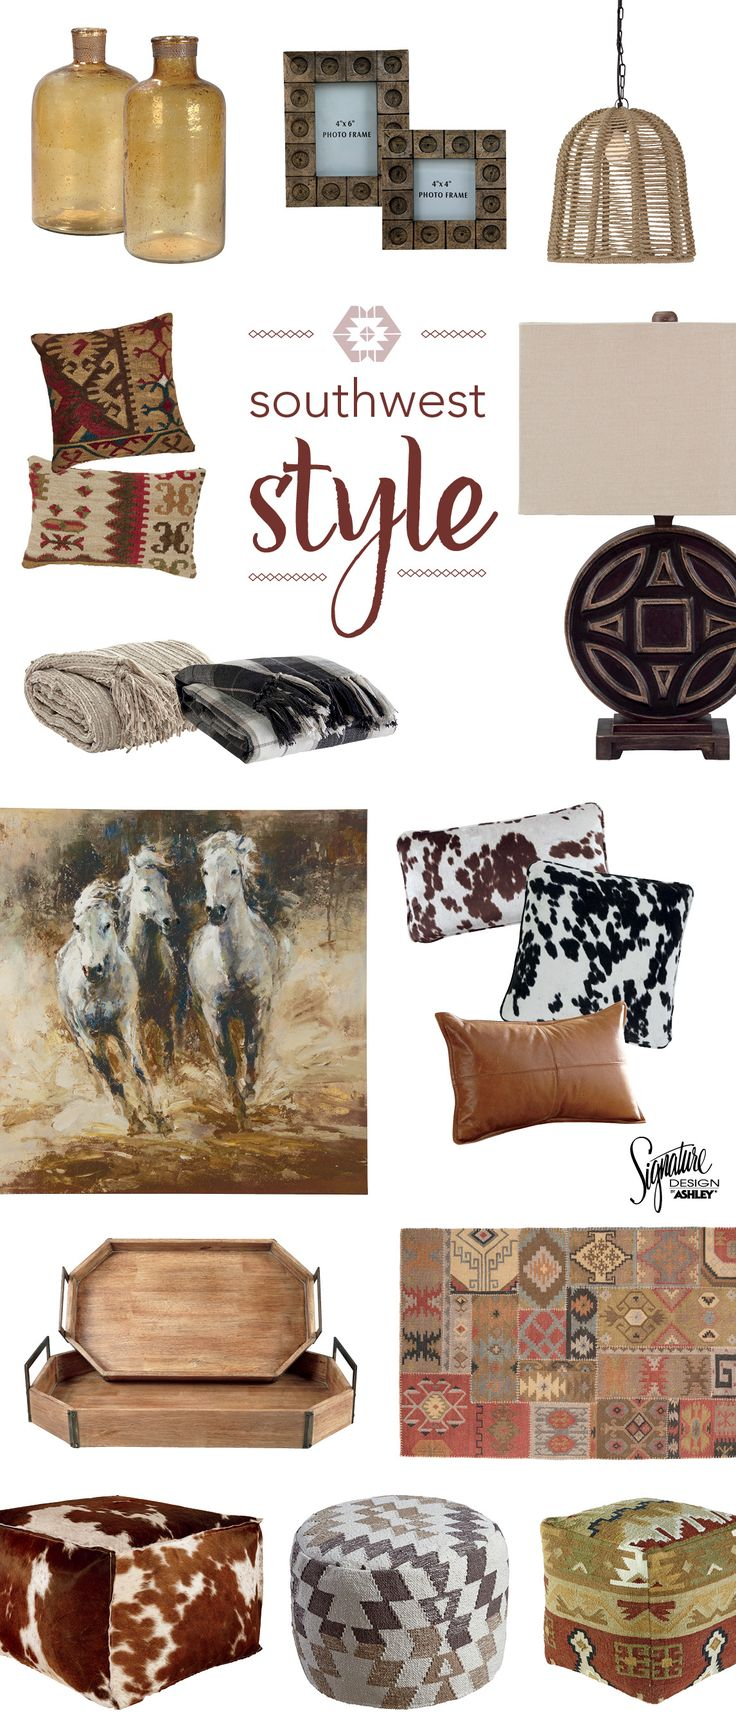 Southwest Home Accessories – Think reds, browns and tans in a variety of texture…